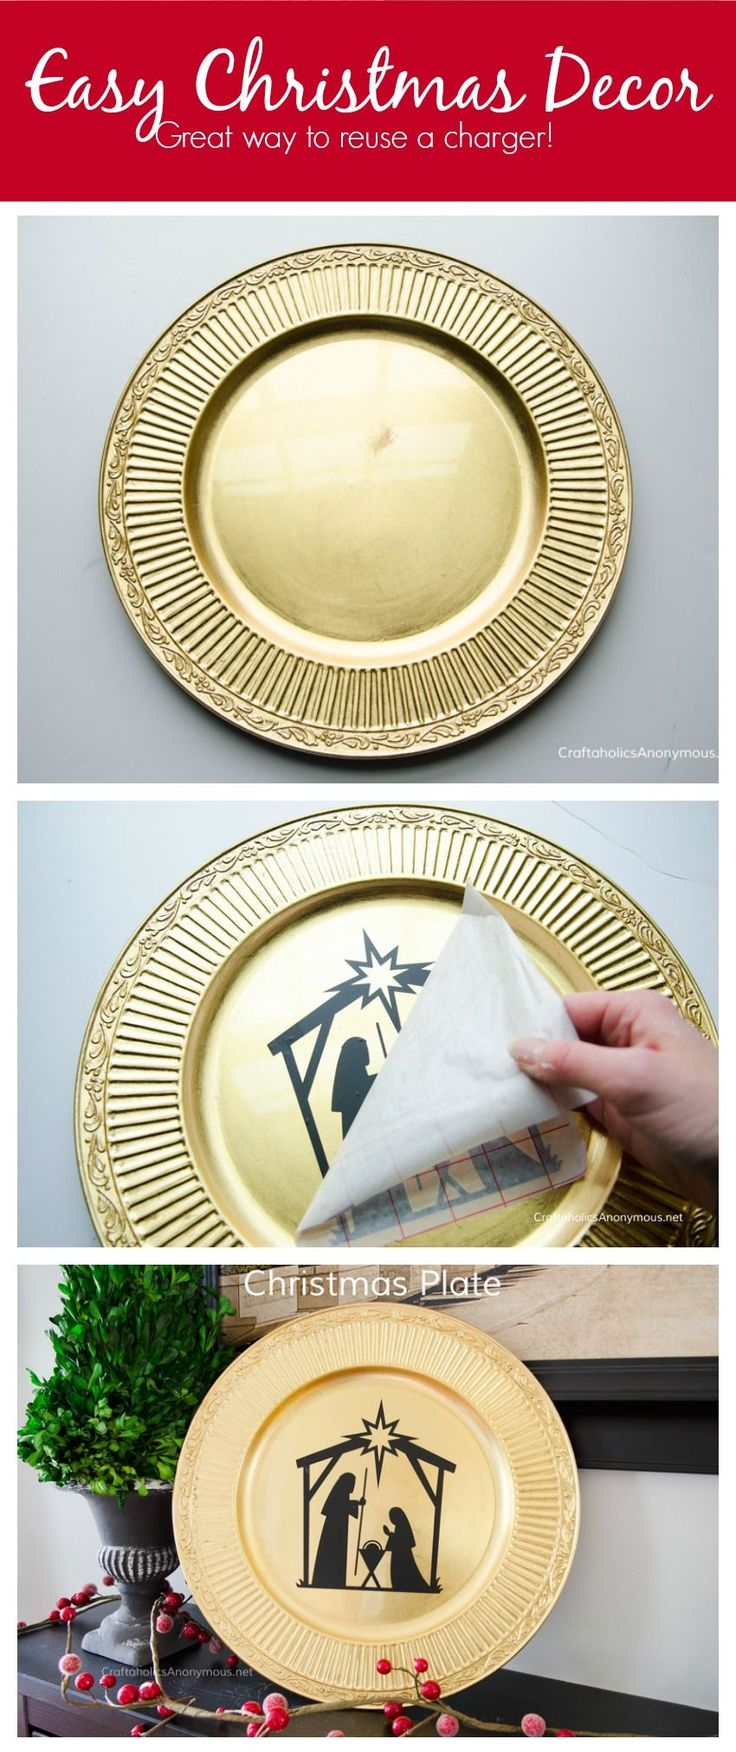 DIY Christmas Charger plate decor idea. Would make a great handmade Christmas gift too!